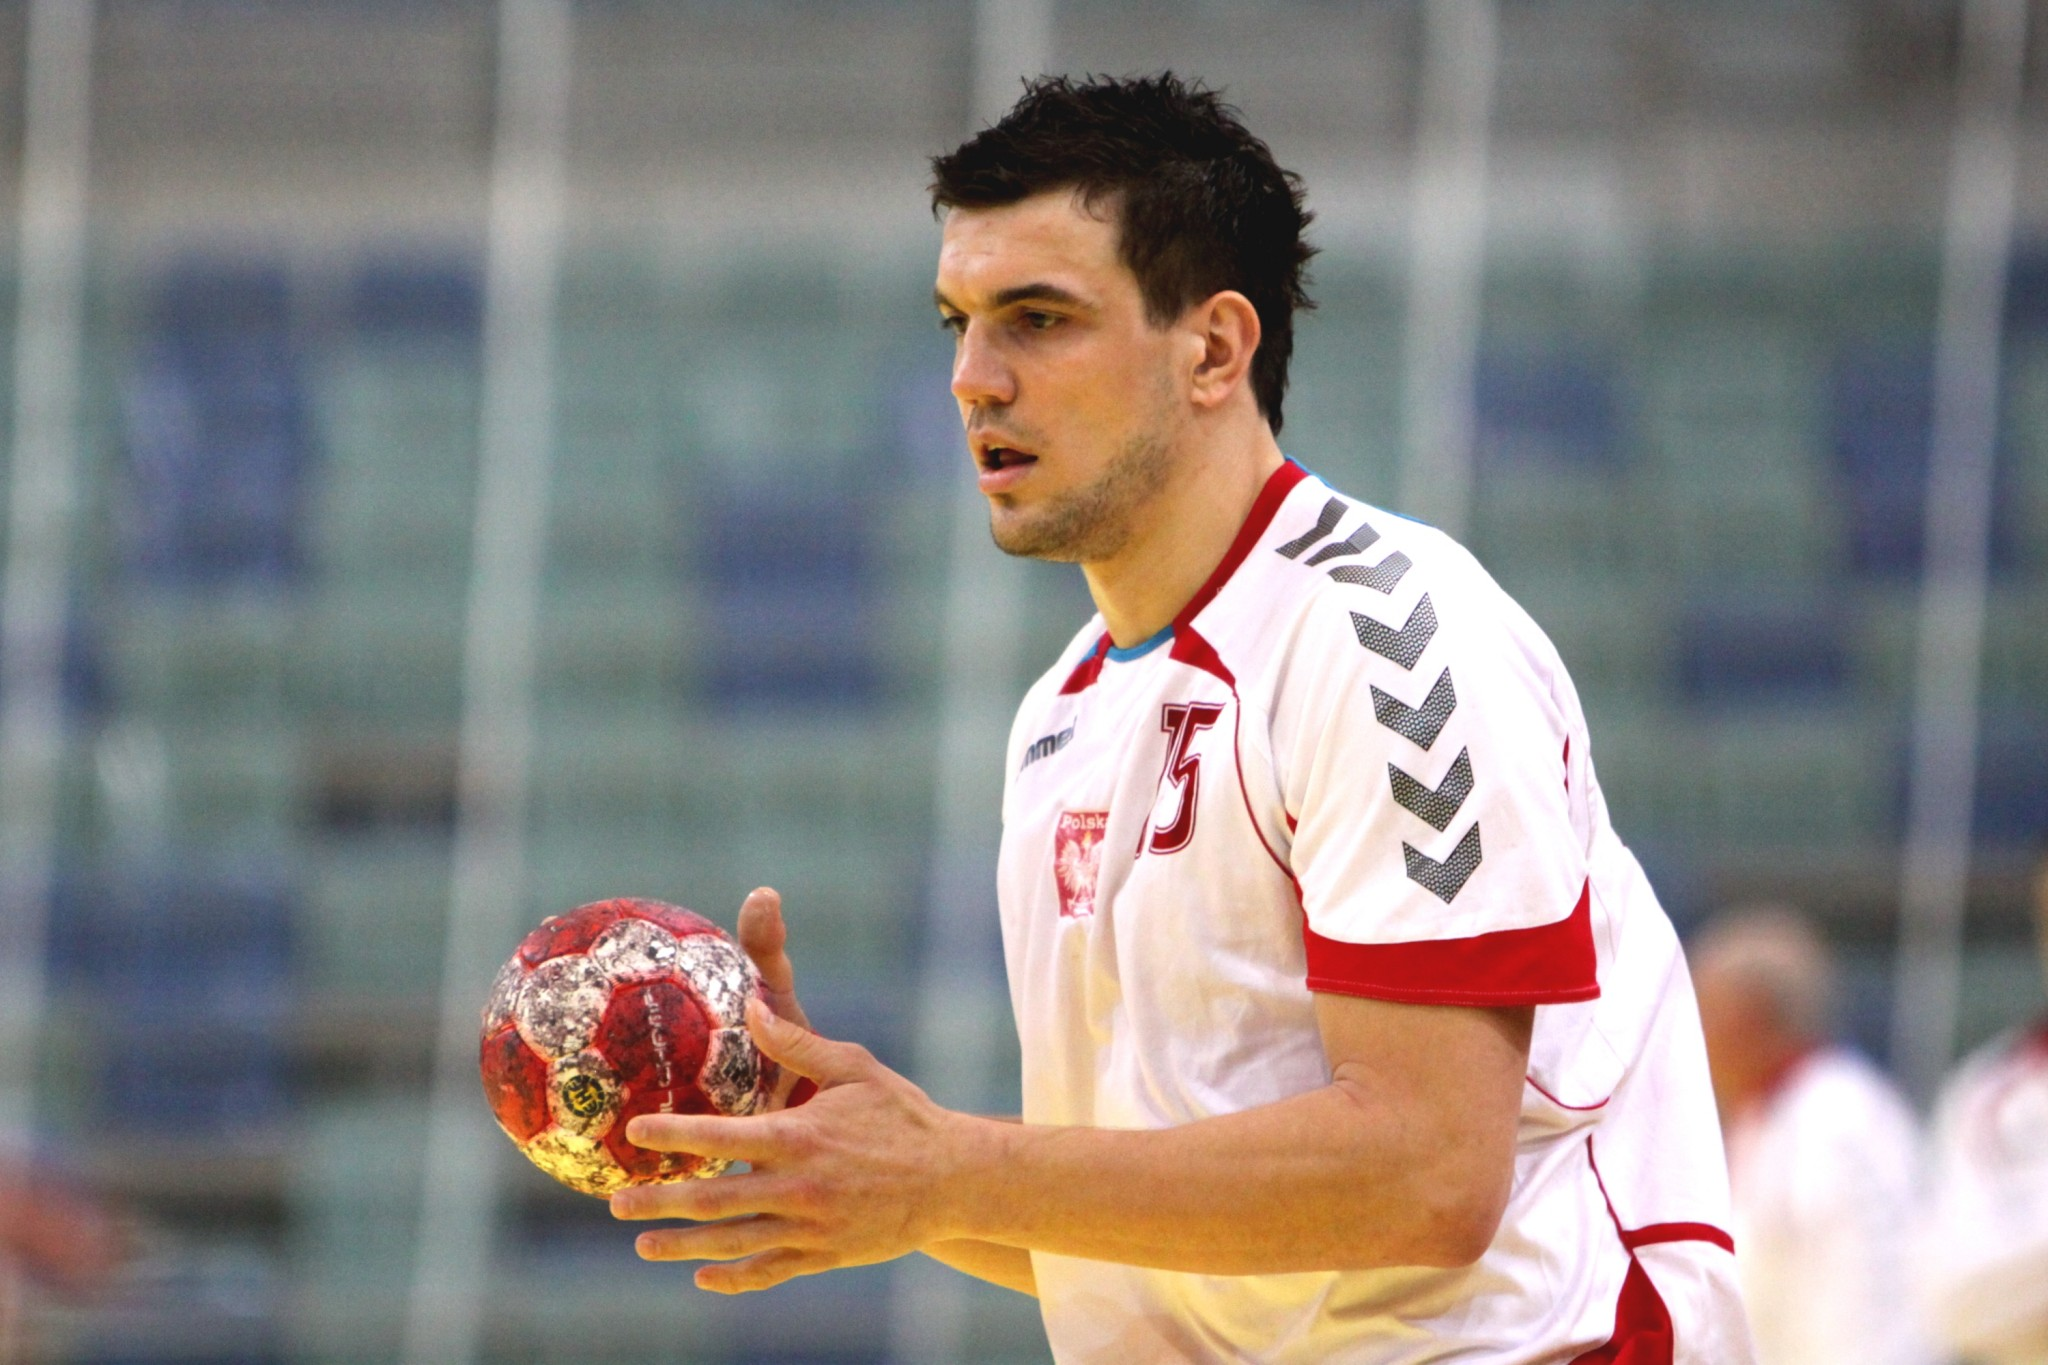 Polish left back Michał Jurecki was chosen as one of the tournament's best players